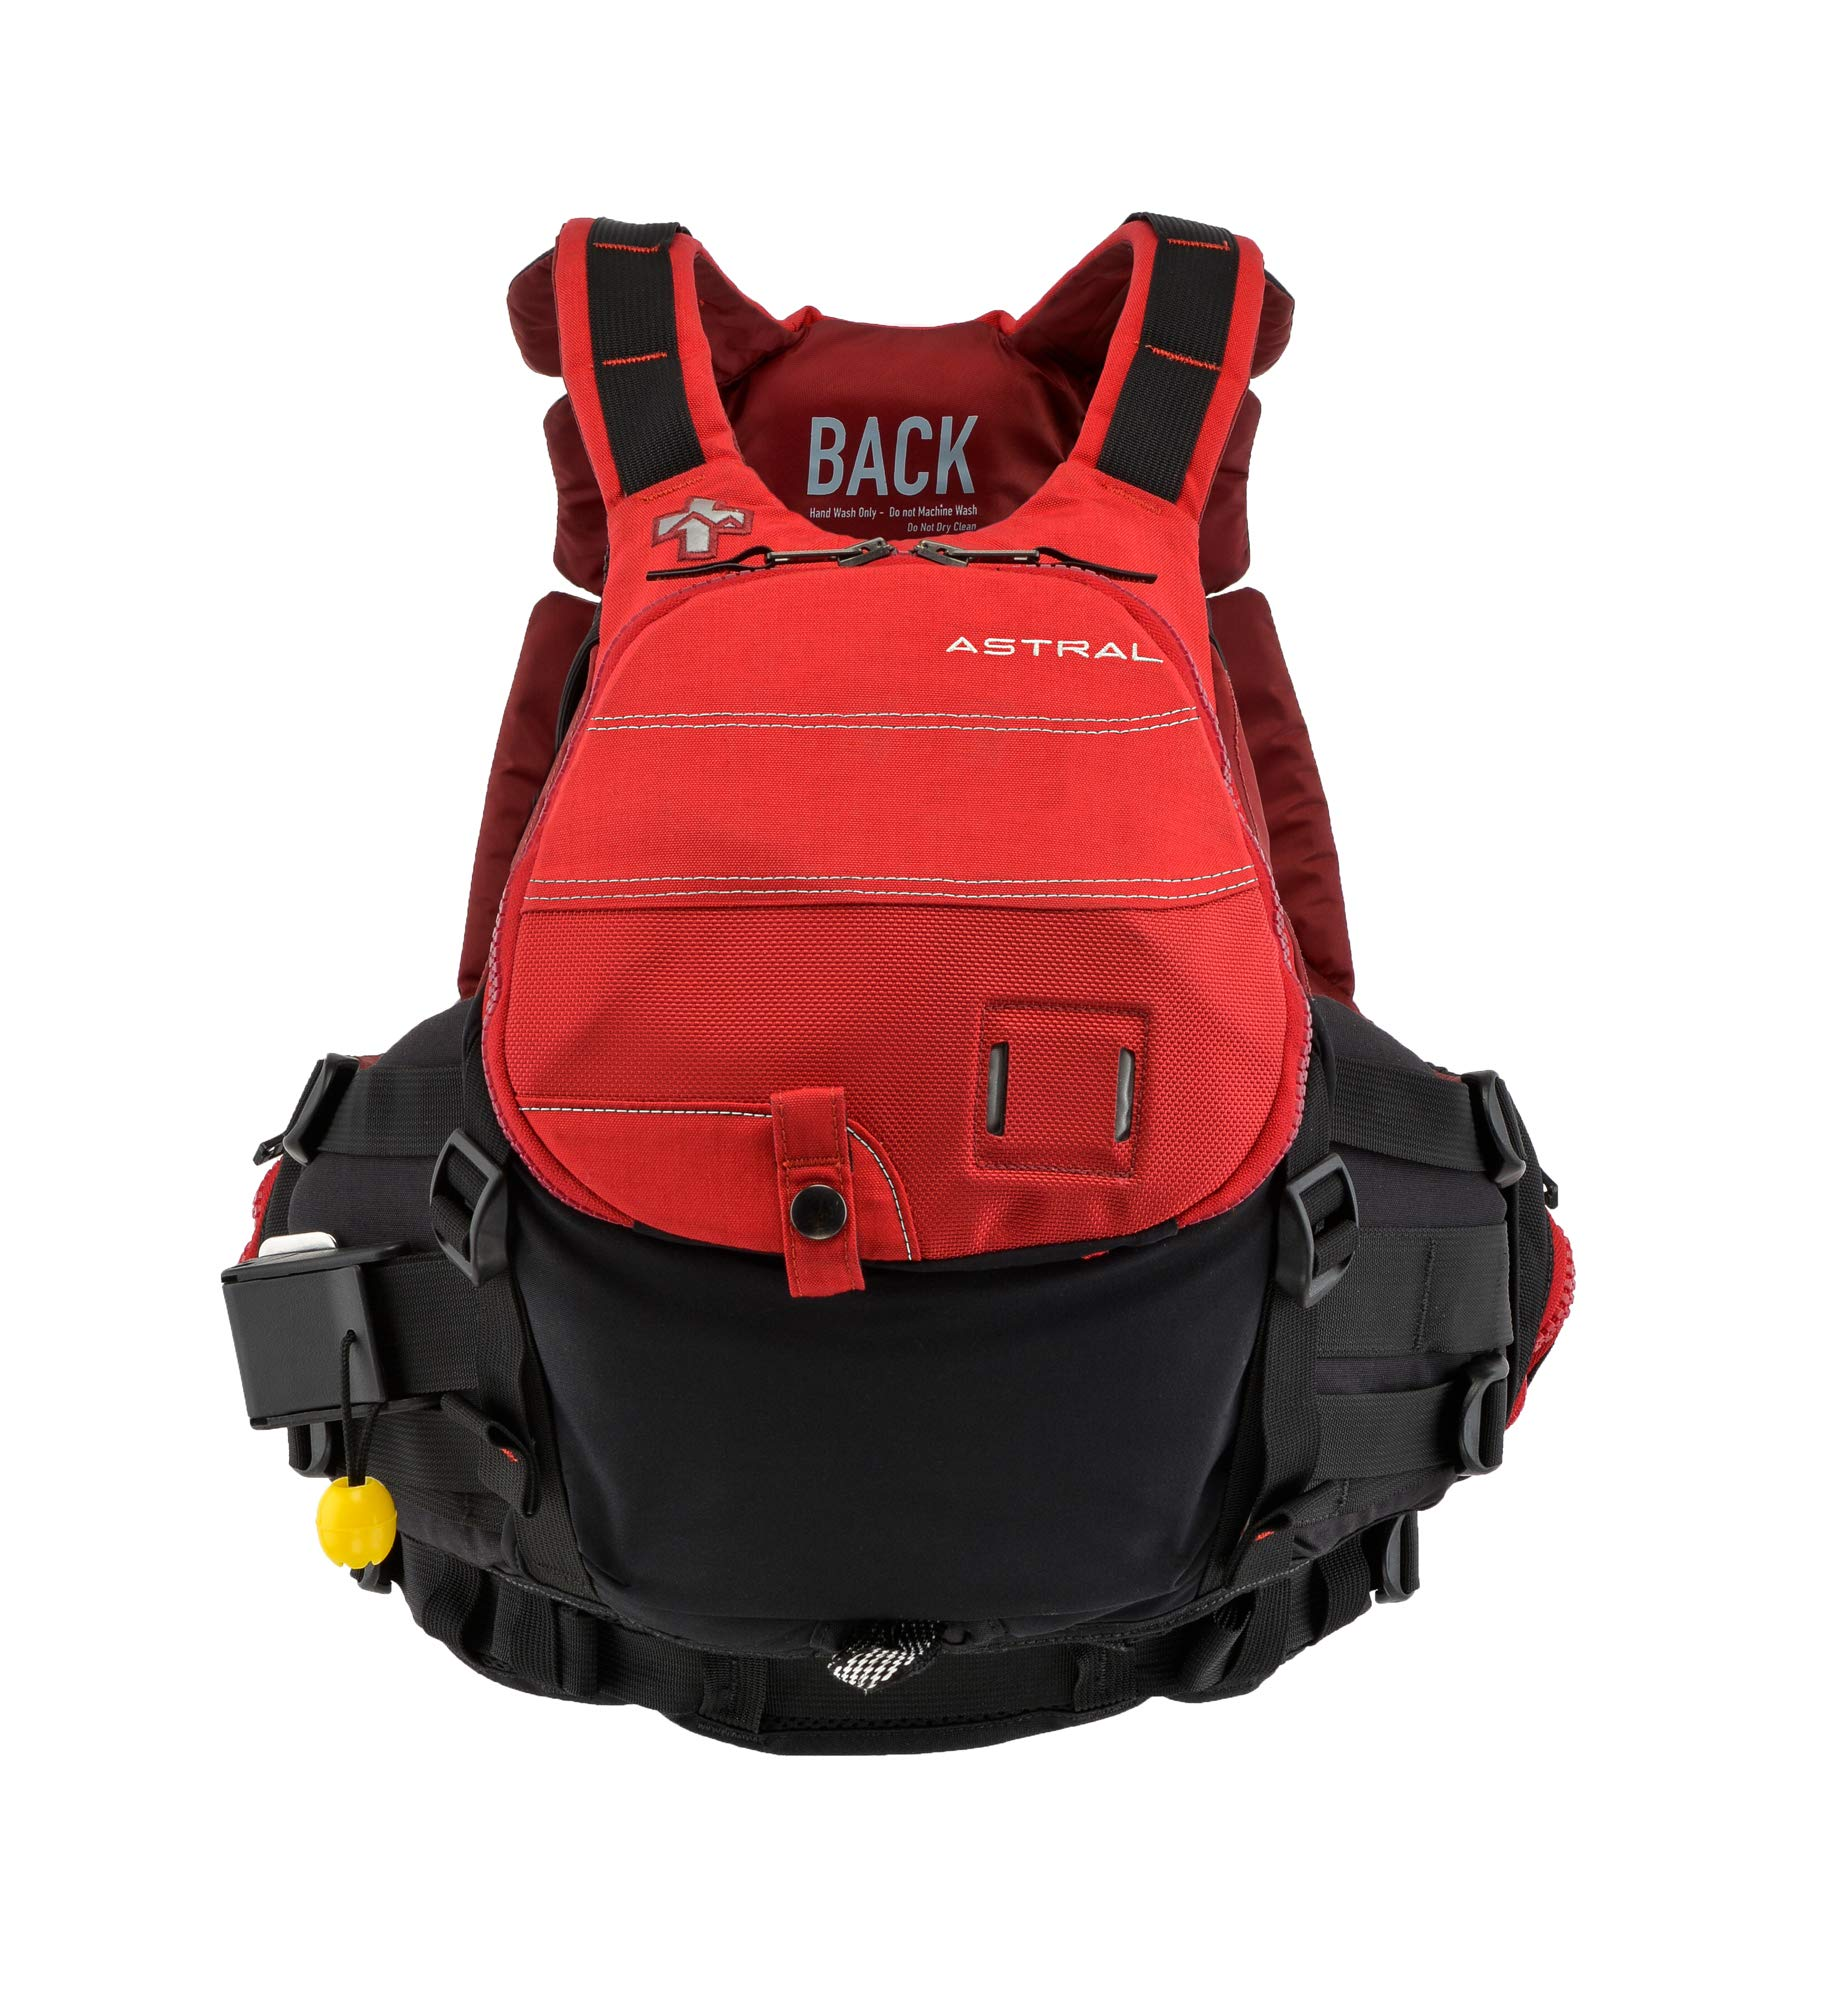 Astral GreenJacket Life Jacket PFD for Whitewater Rescue, Sea, and Stand Up Paddle Boarding, Cherry Creek Red, Small/Medium